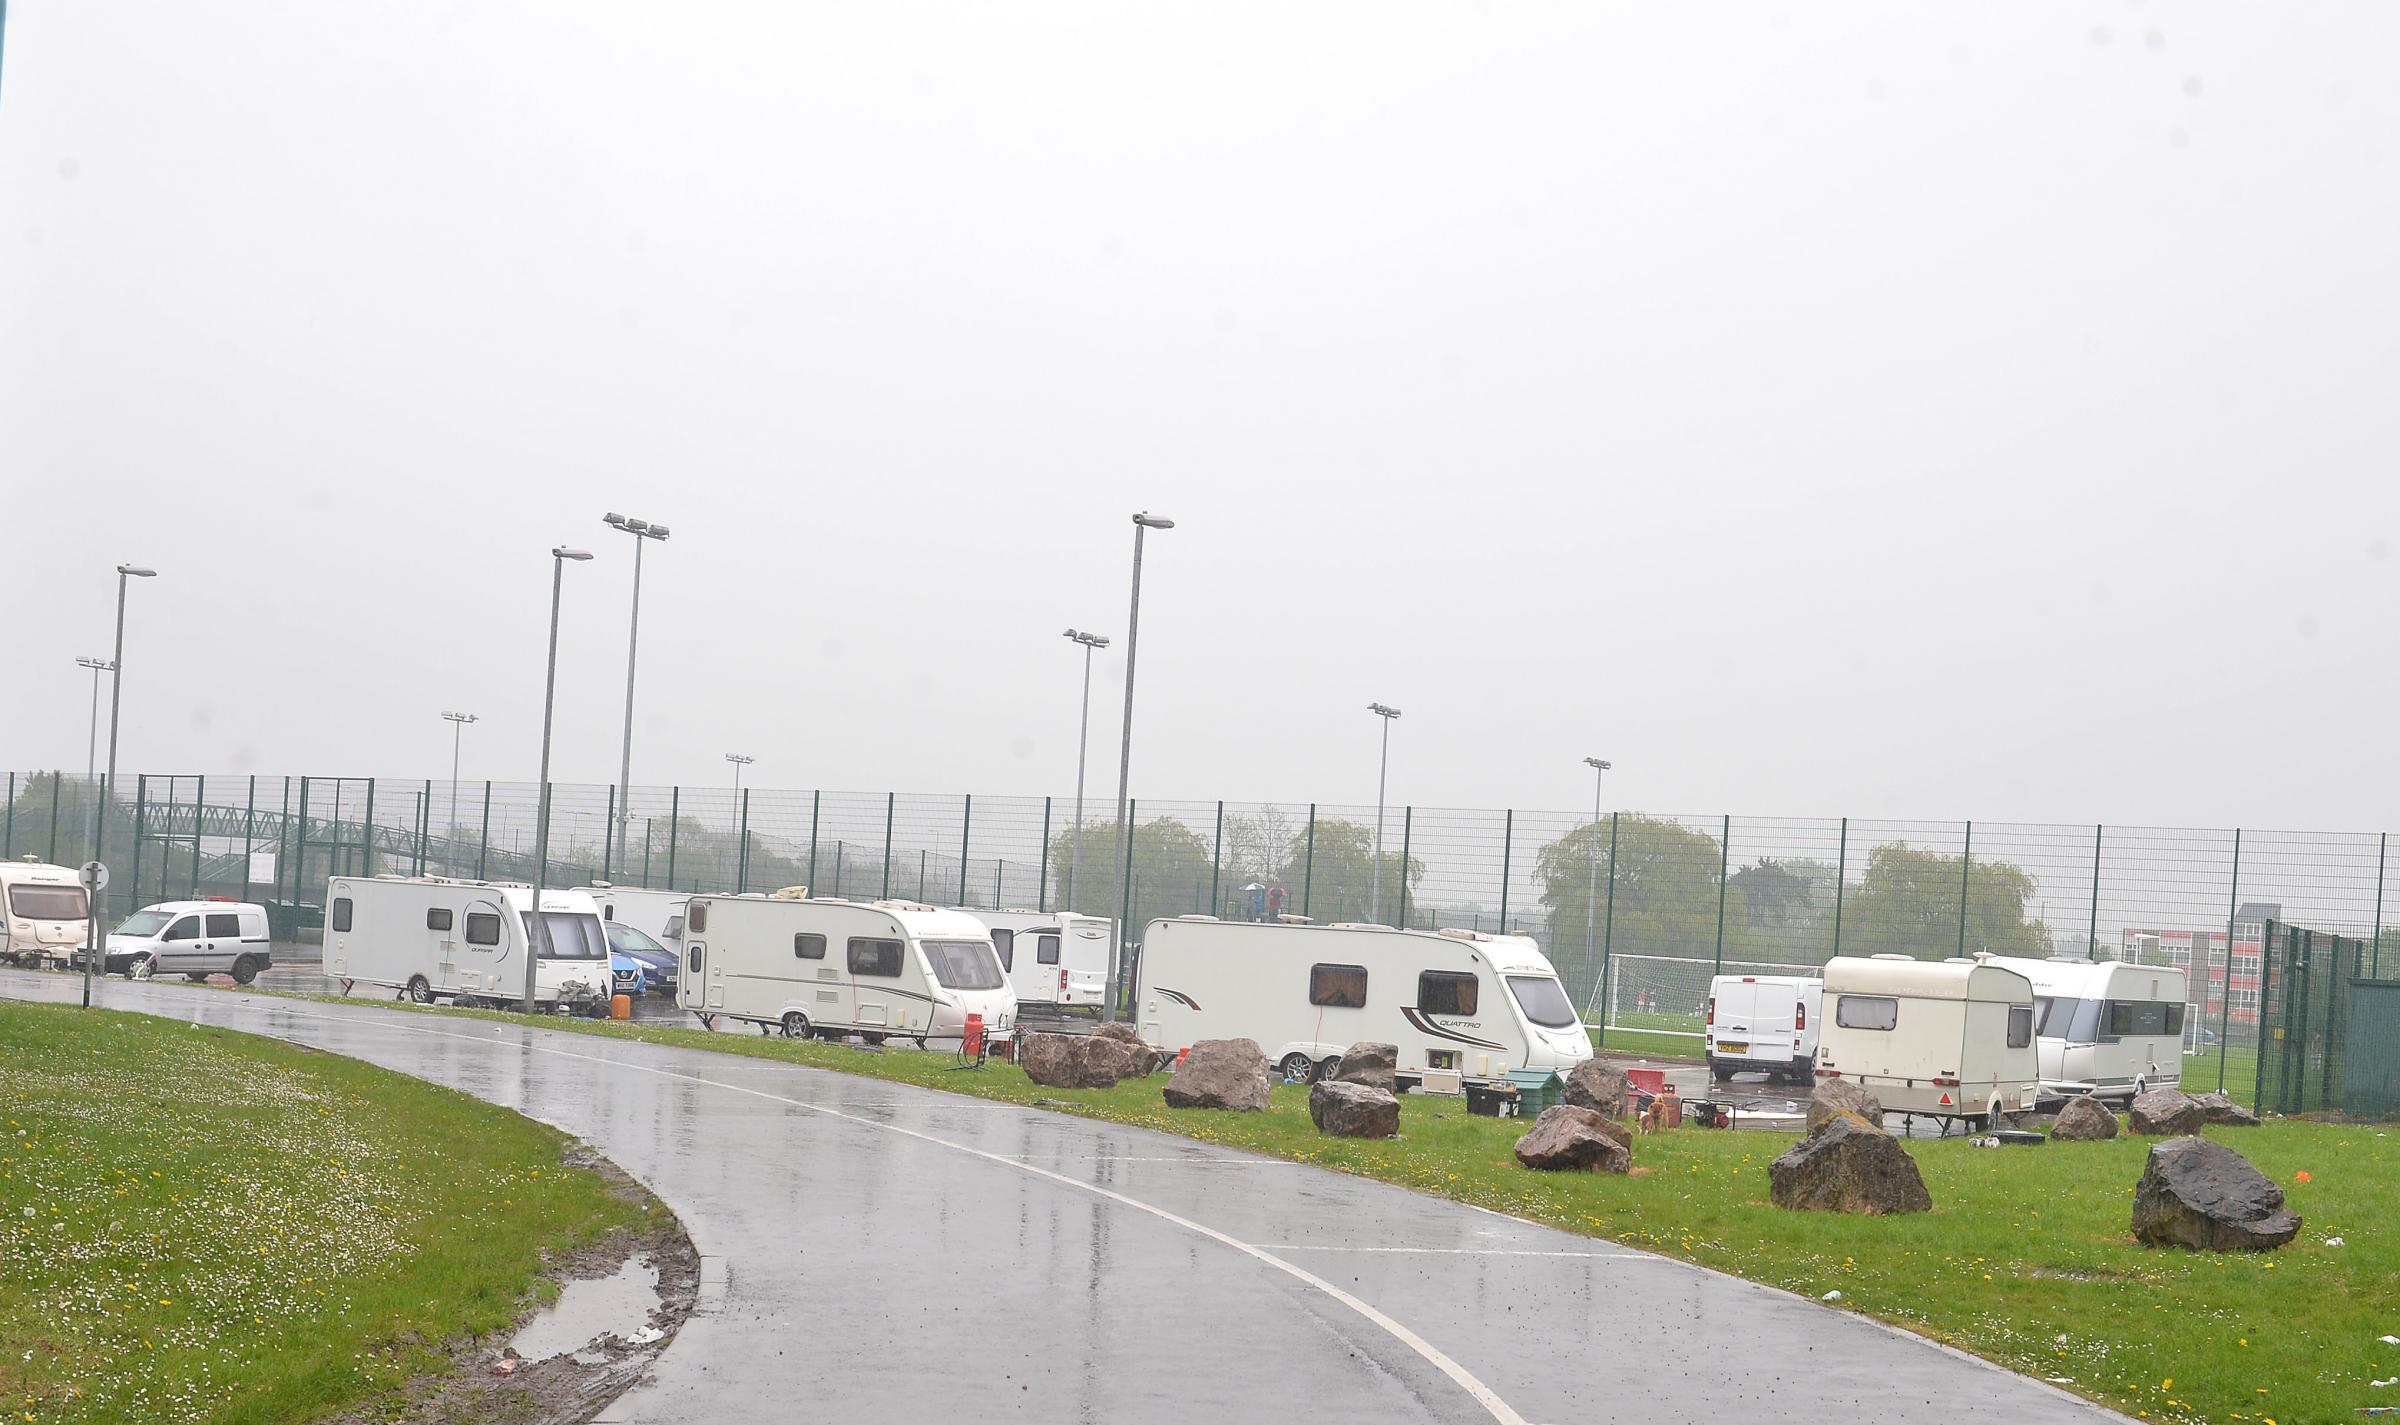 Travellers set up another illegal encampment in Newport